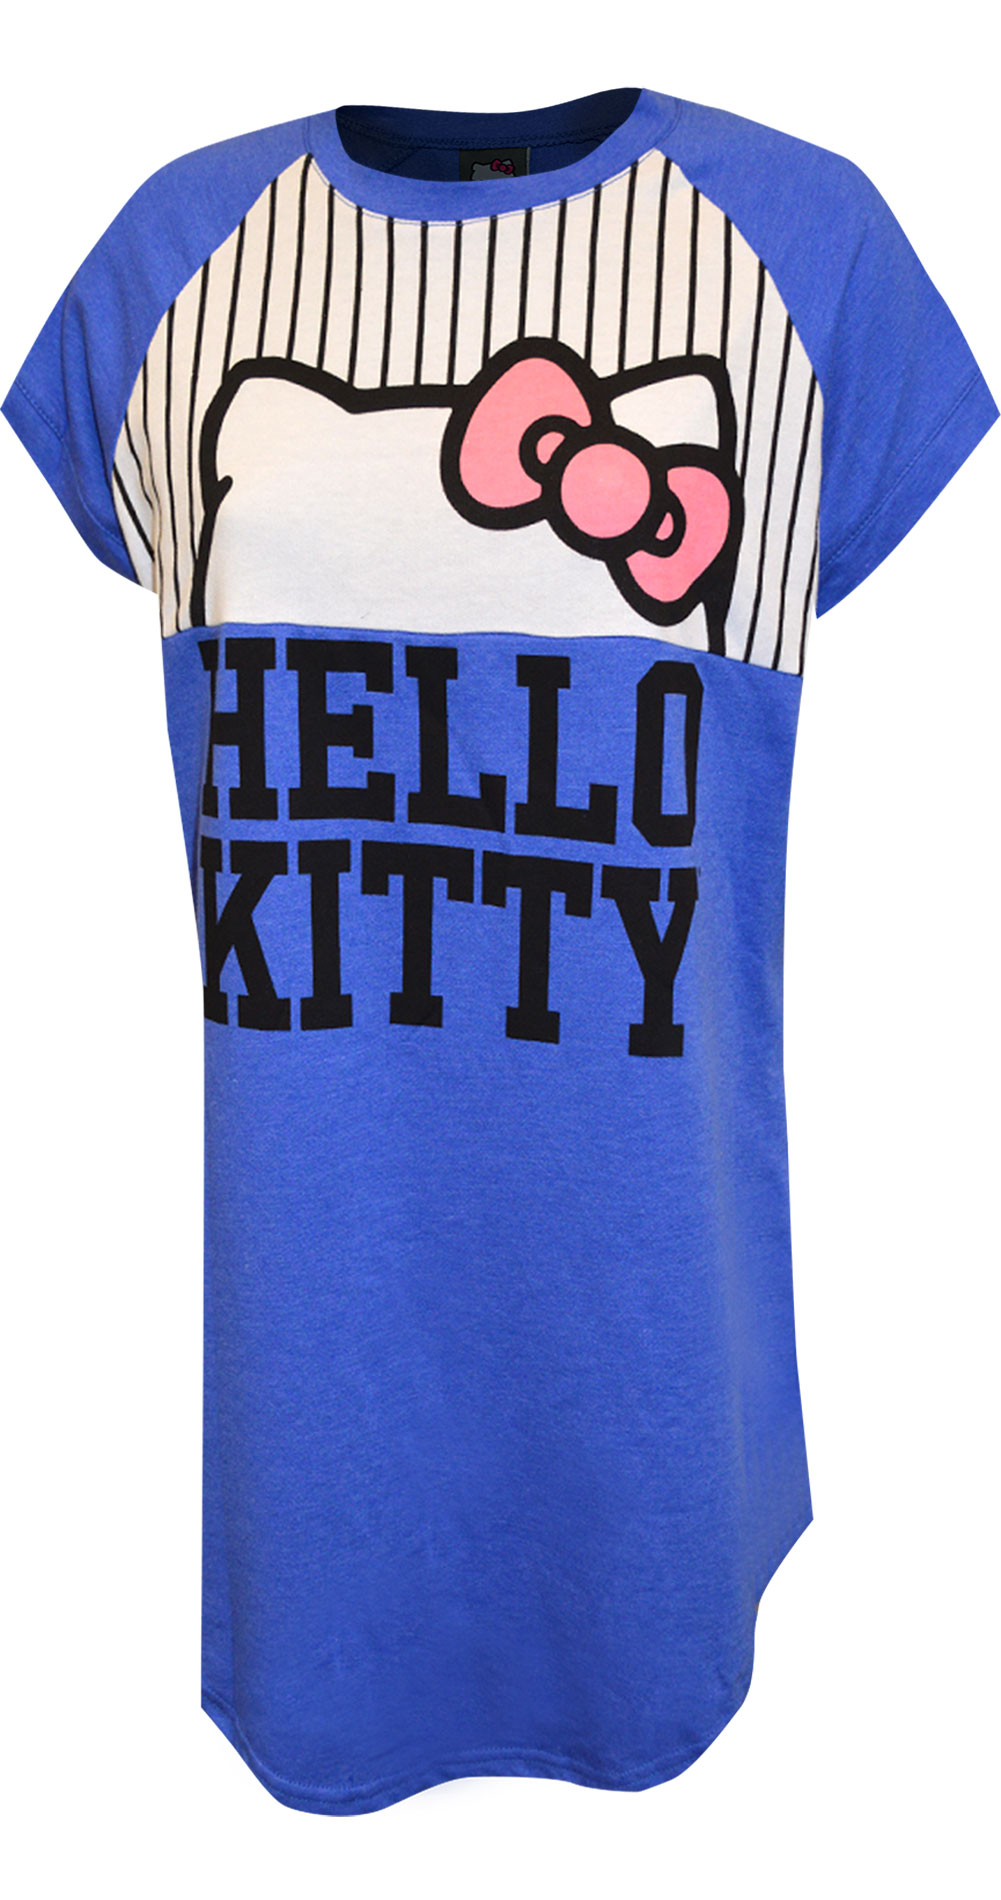 Image of Hello Kitty French Terry Short Night Shirt for women